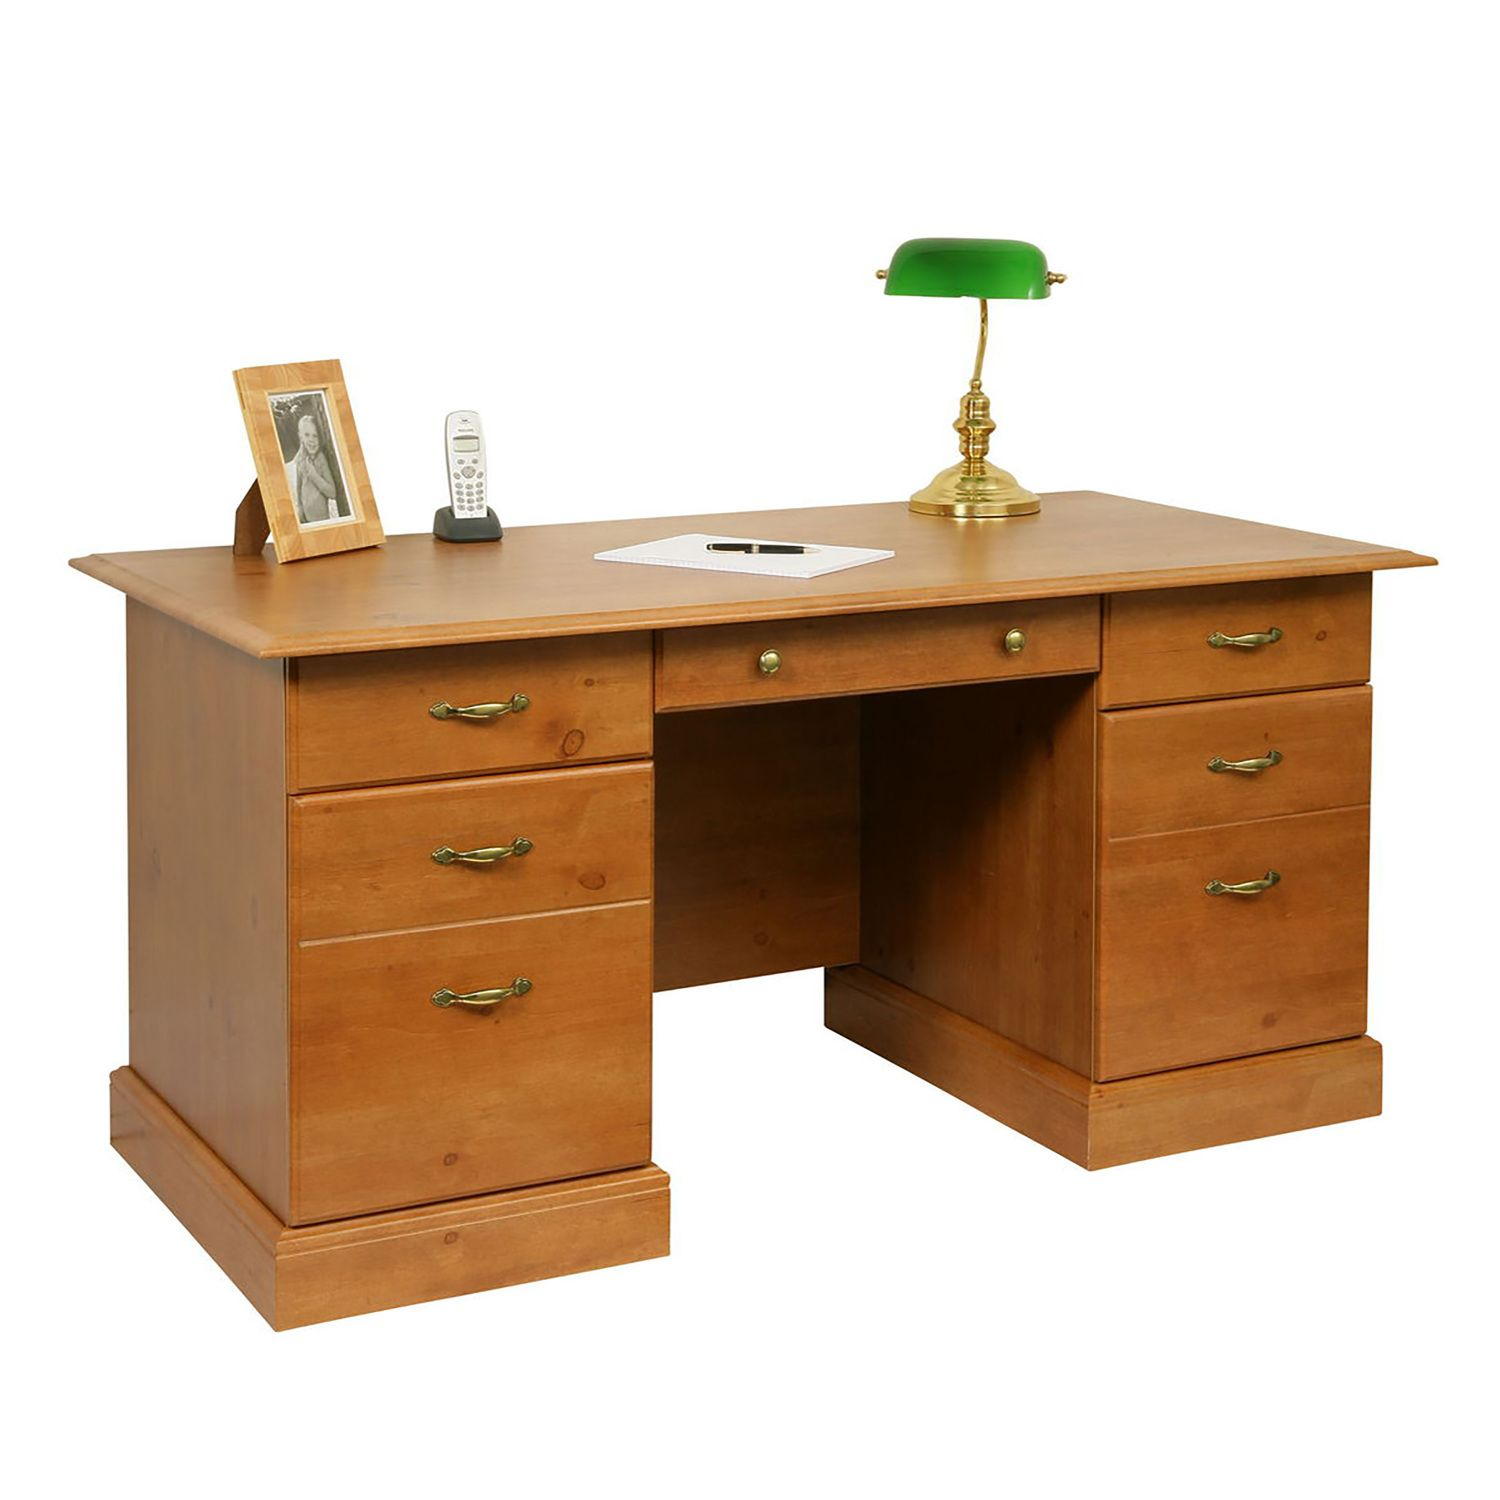 Furniture Contemporary fice Desks With Drawers And puter Rack